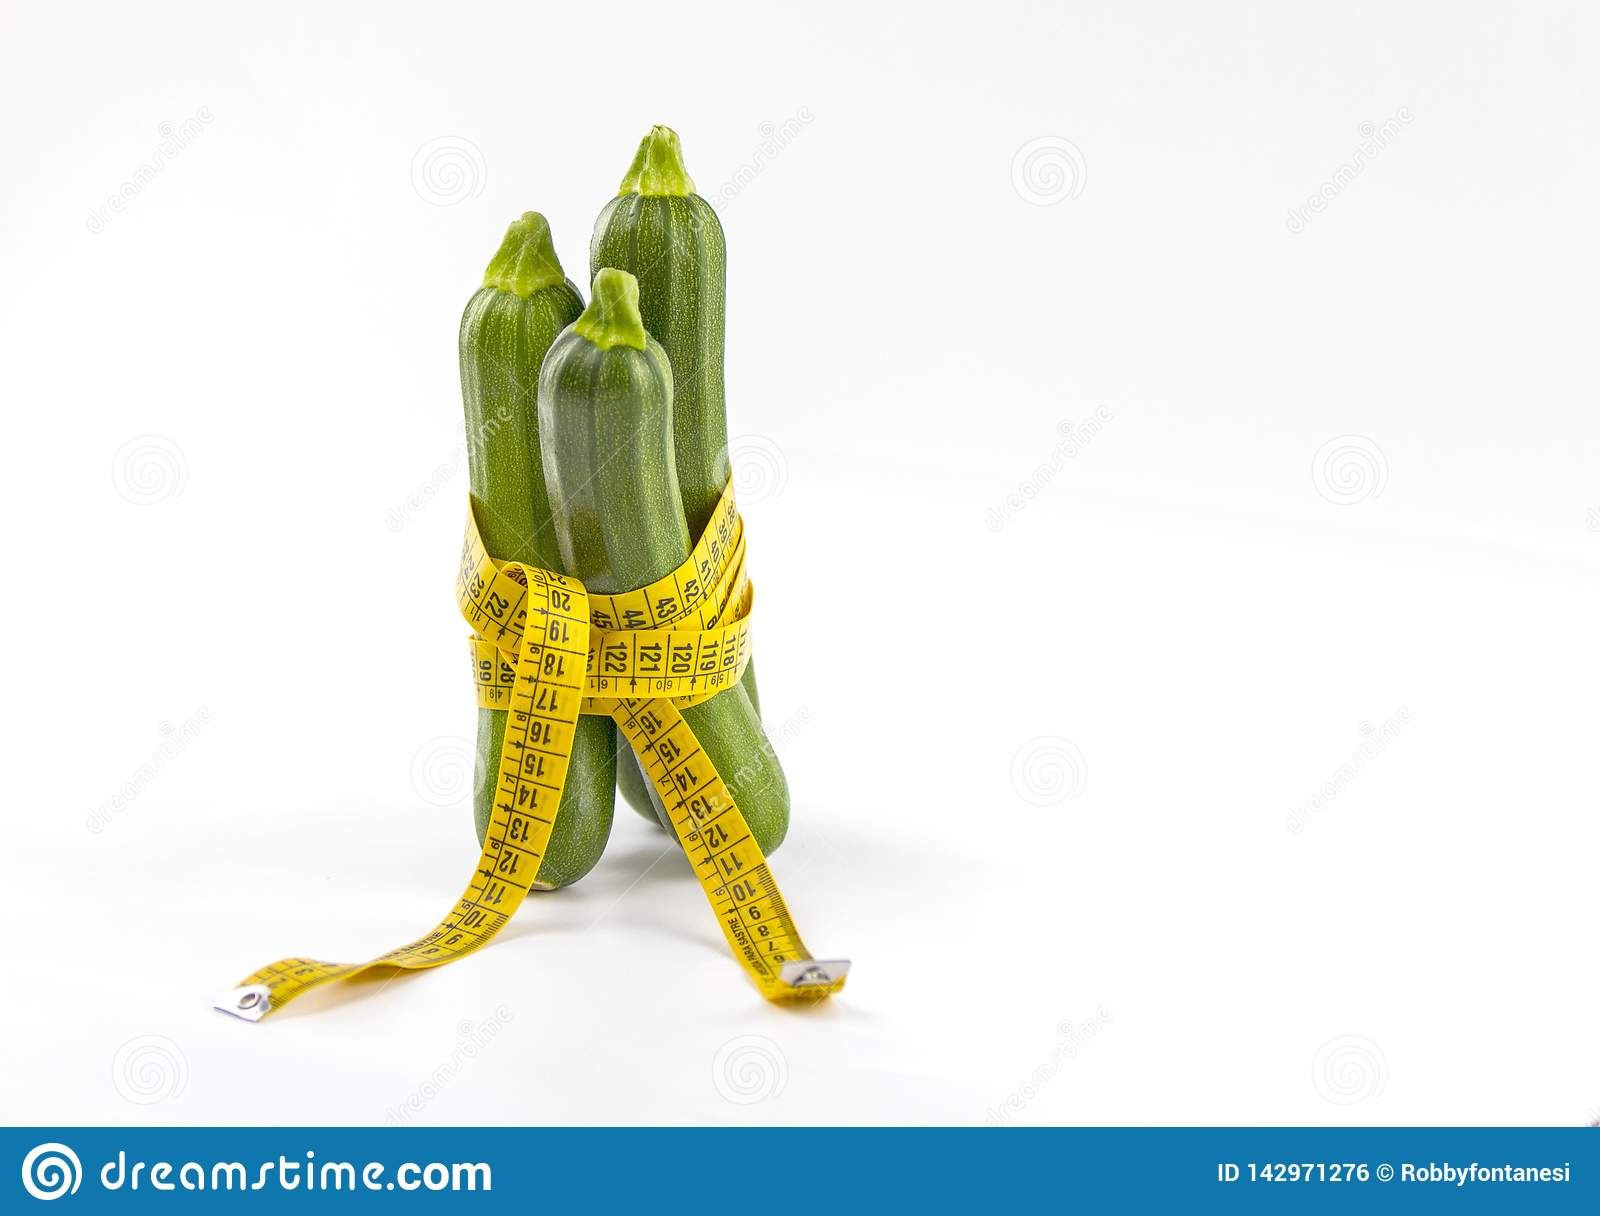 Vegetarian diet to reduce weight. Three freshly picked courgettes wrapped in a body measuring tape ruler that symbolizes the